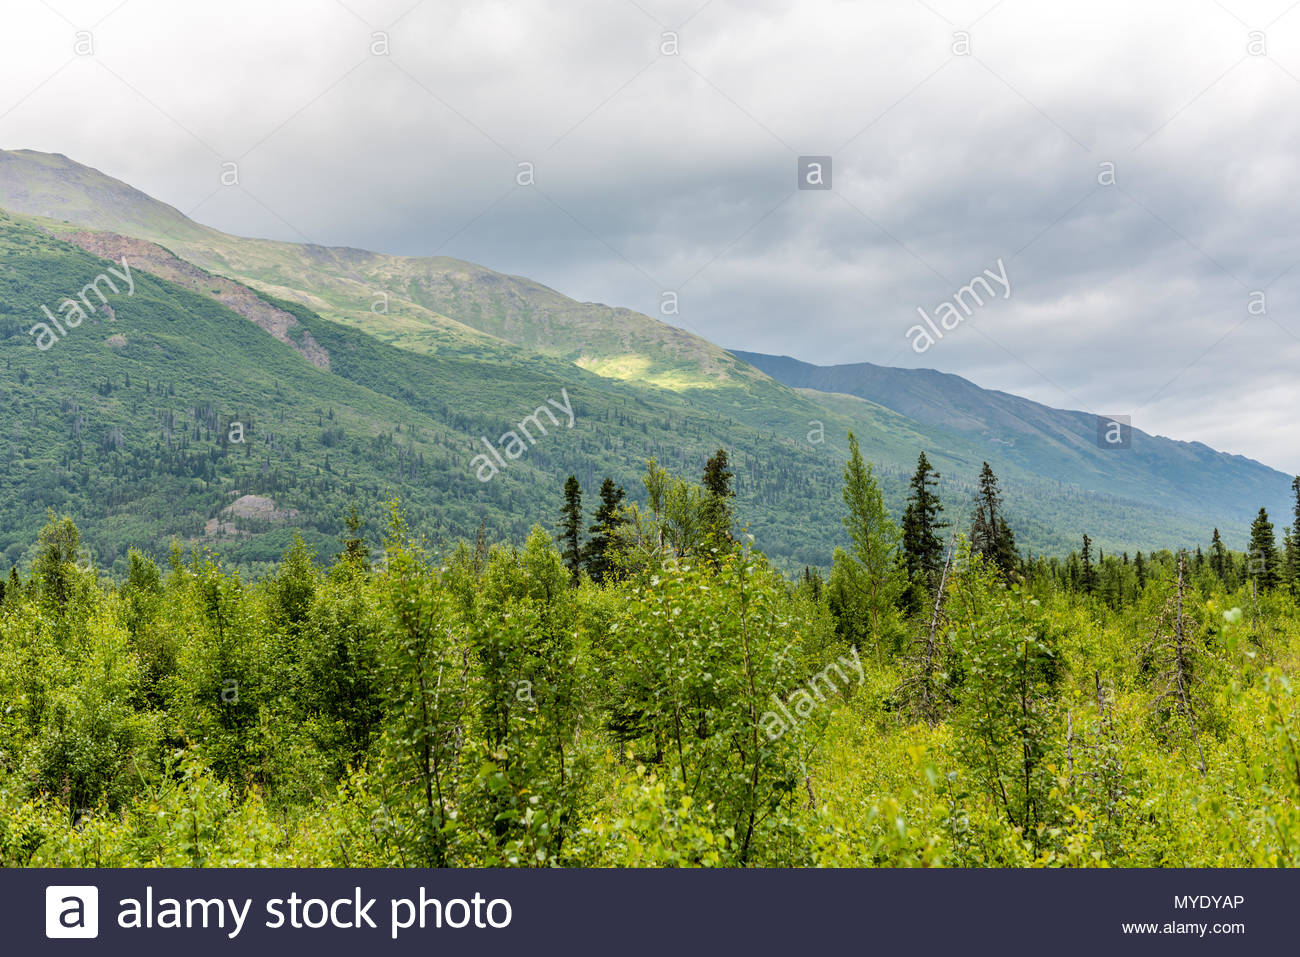 The Chugach Mountains Along the Eagle River near Anchorage, Alaska - Stock Image